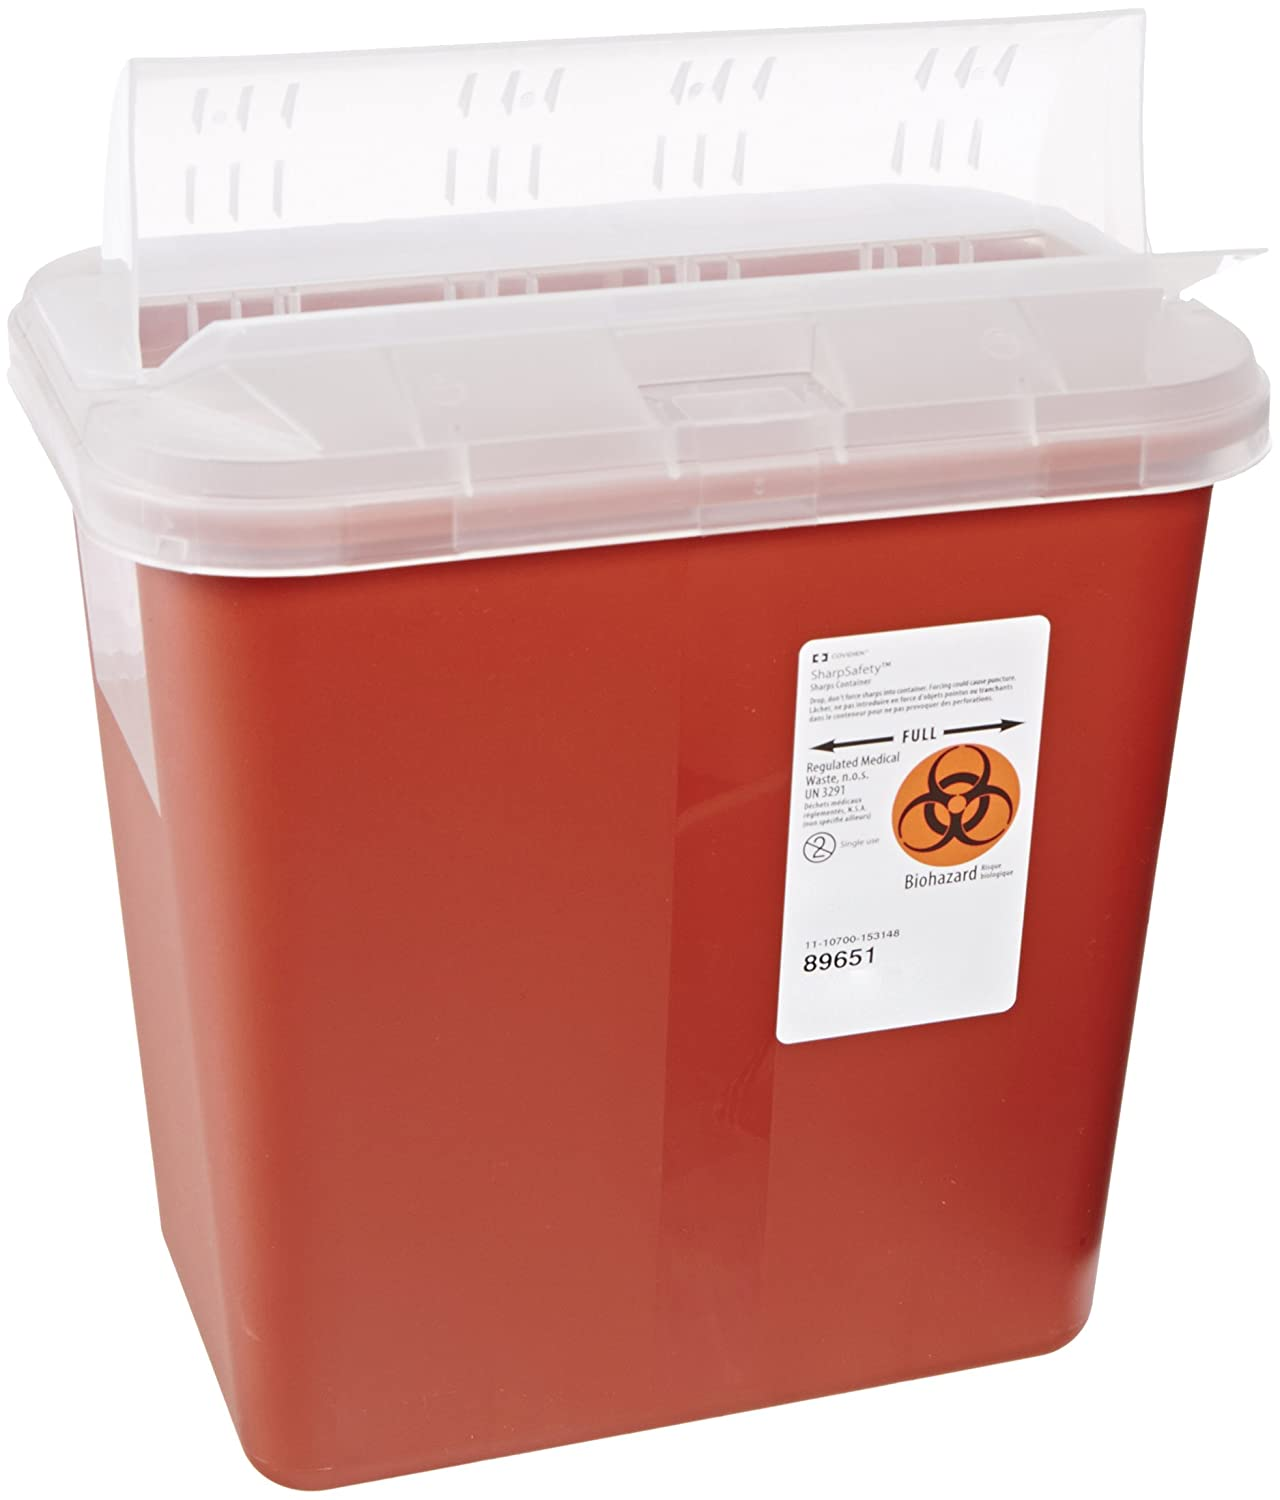 Kendall 89651 SharpSafety Sharps Biohazard Waste Container with Horizontal-Drop Opening Lid, 2 Gallon Capacity, Red (Case of 20)